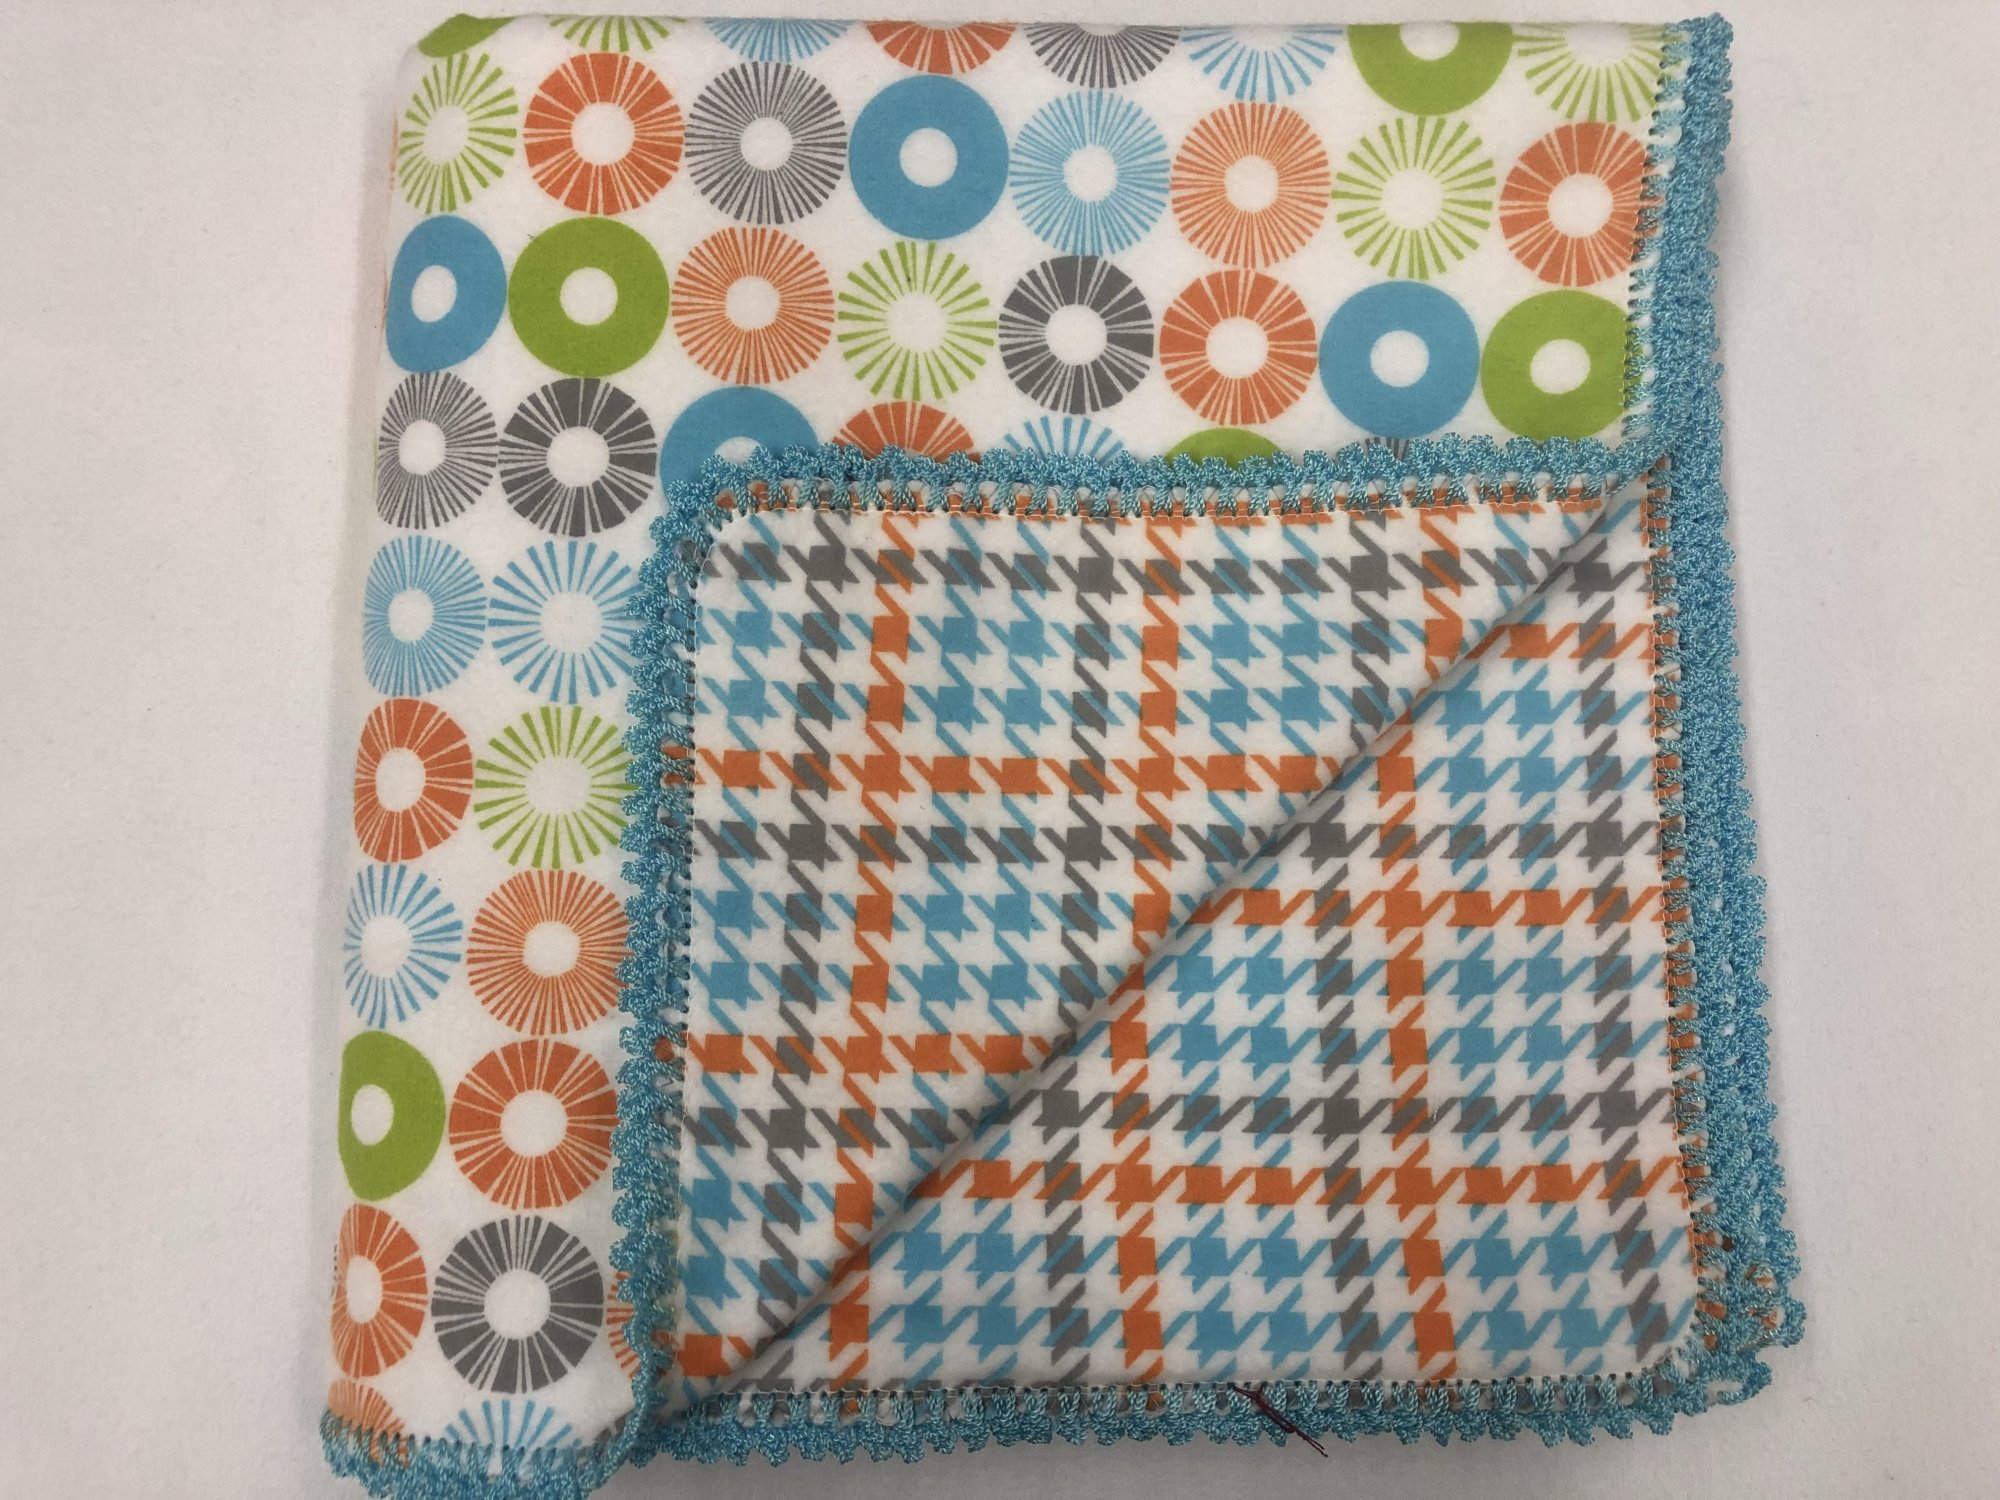 Teal, orange, green, and grey circles on white background/Teal, grey,  and orange houndstooth crocheted blanket